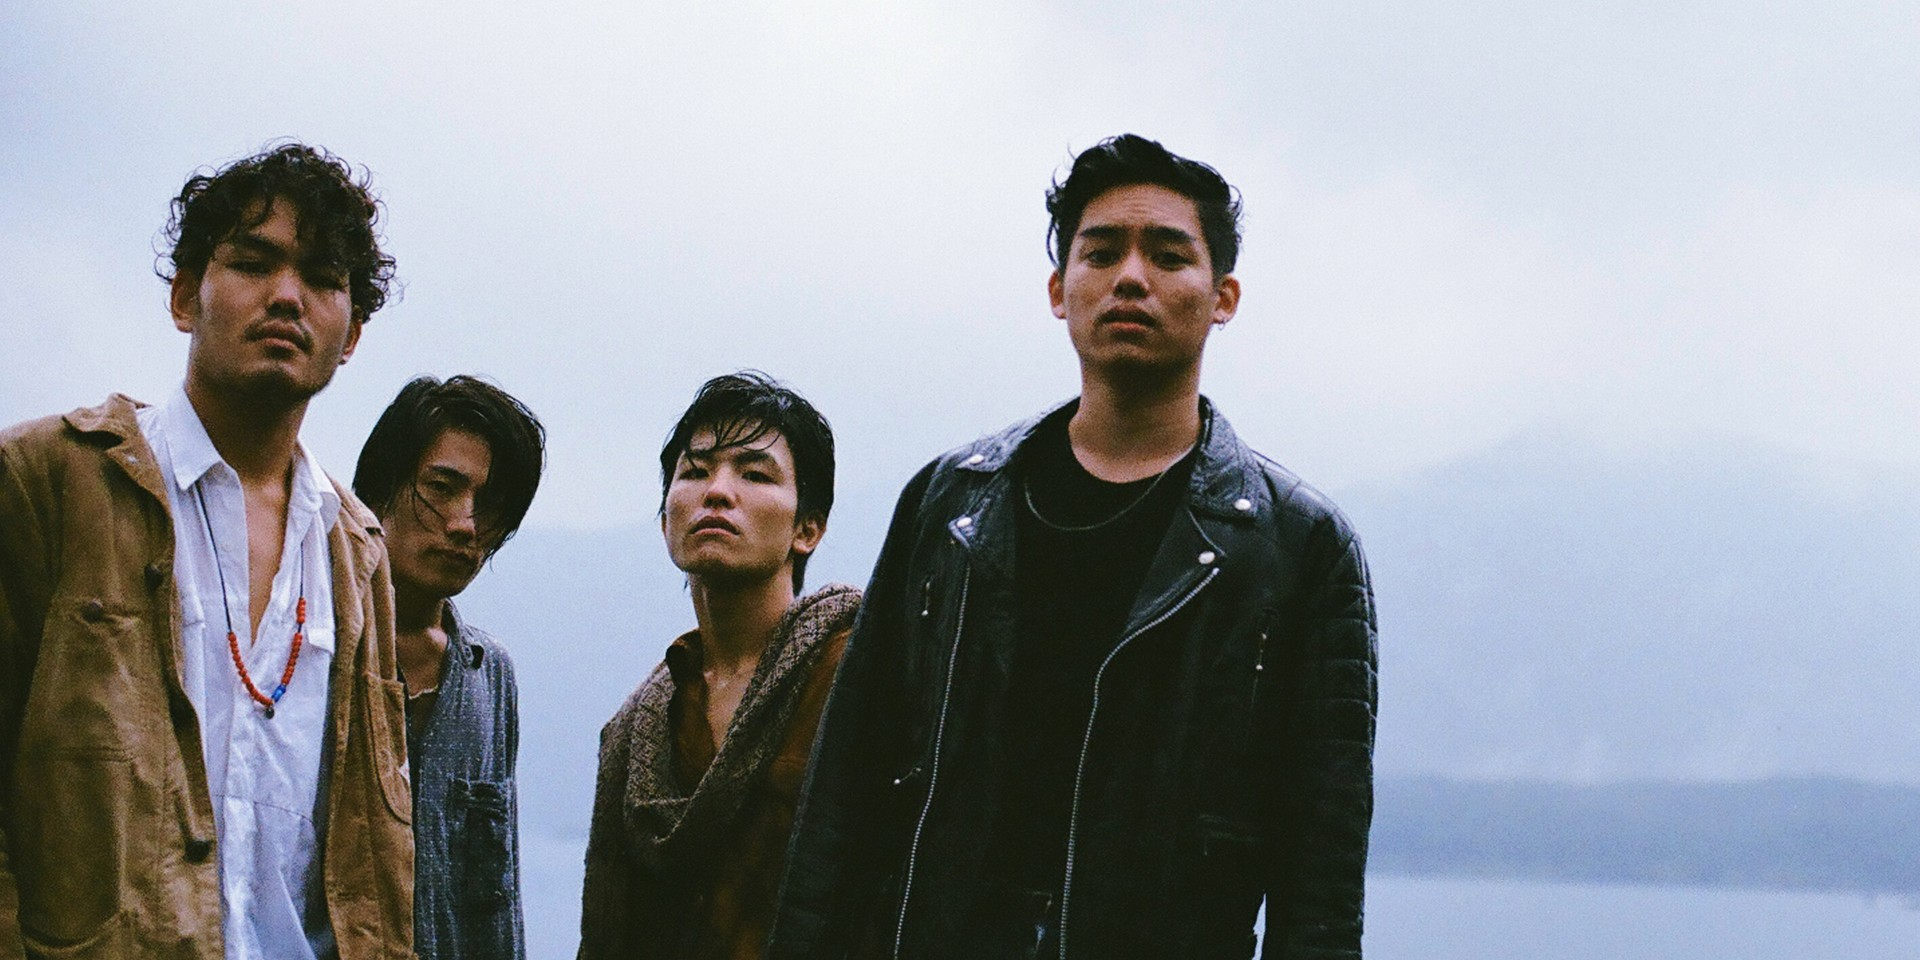 Japanese dream pop band The fin. to perform in Singapore